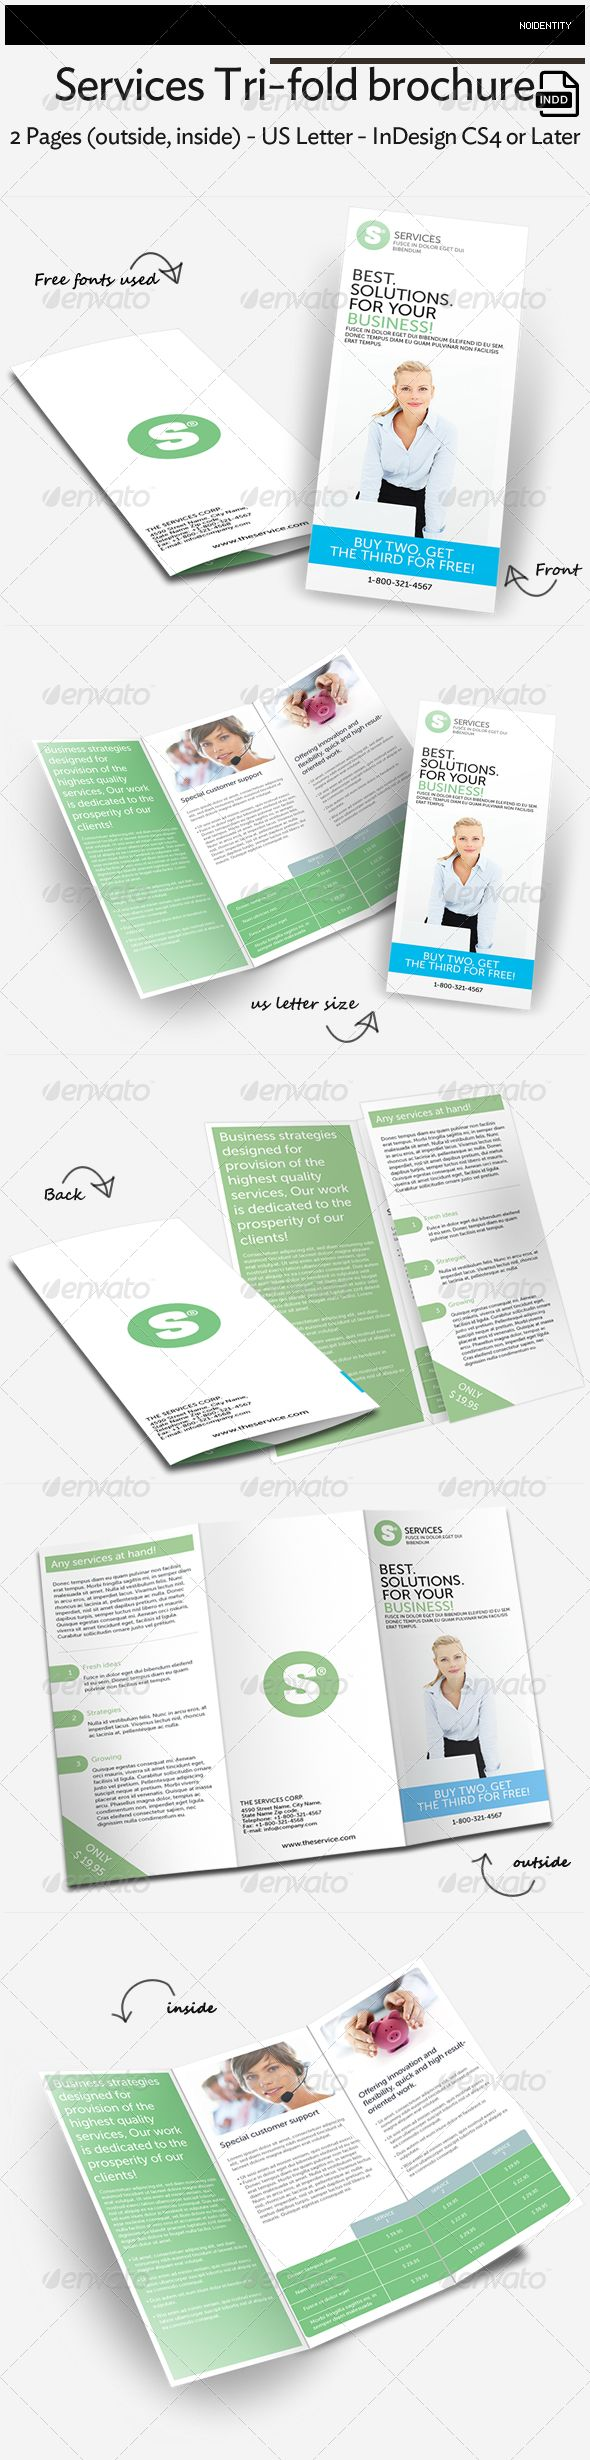 98 best Print Templates images on Pinterest | Print templates ...